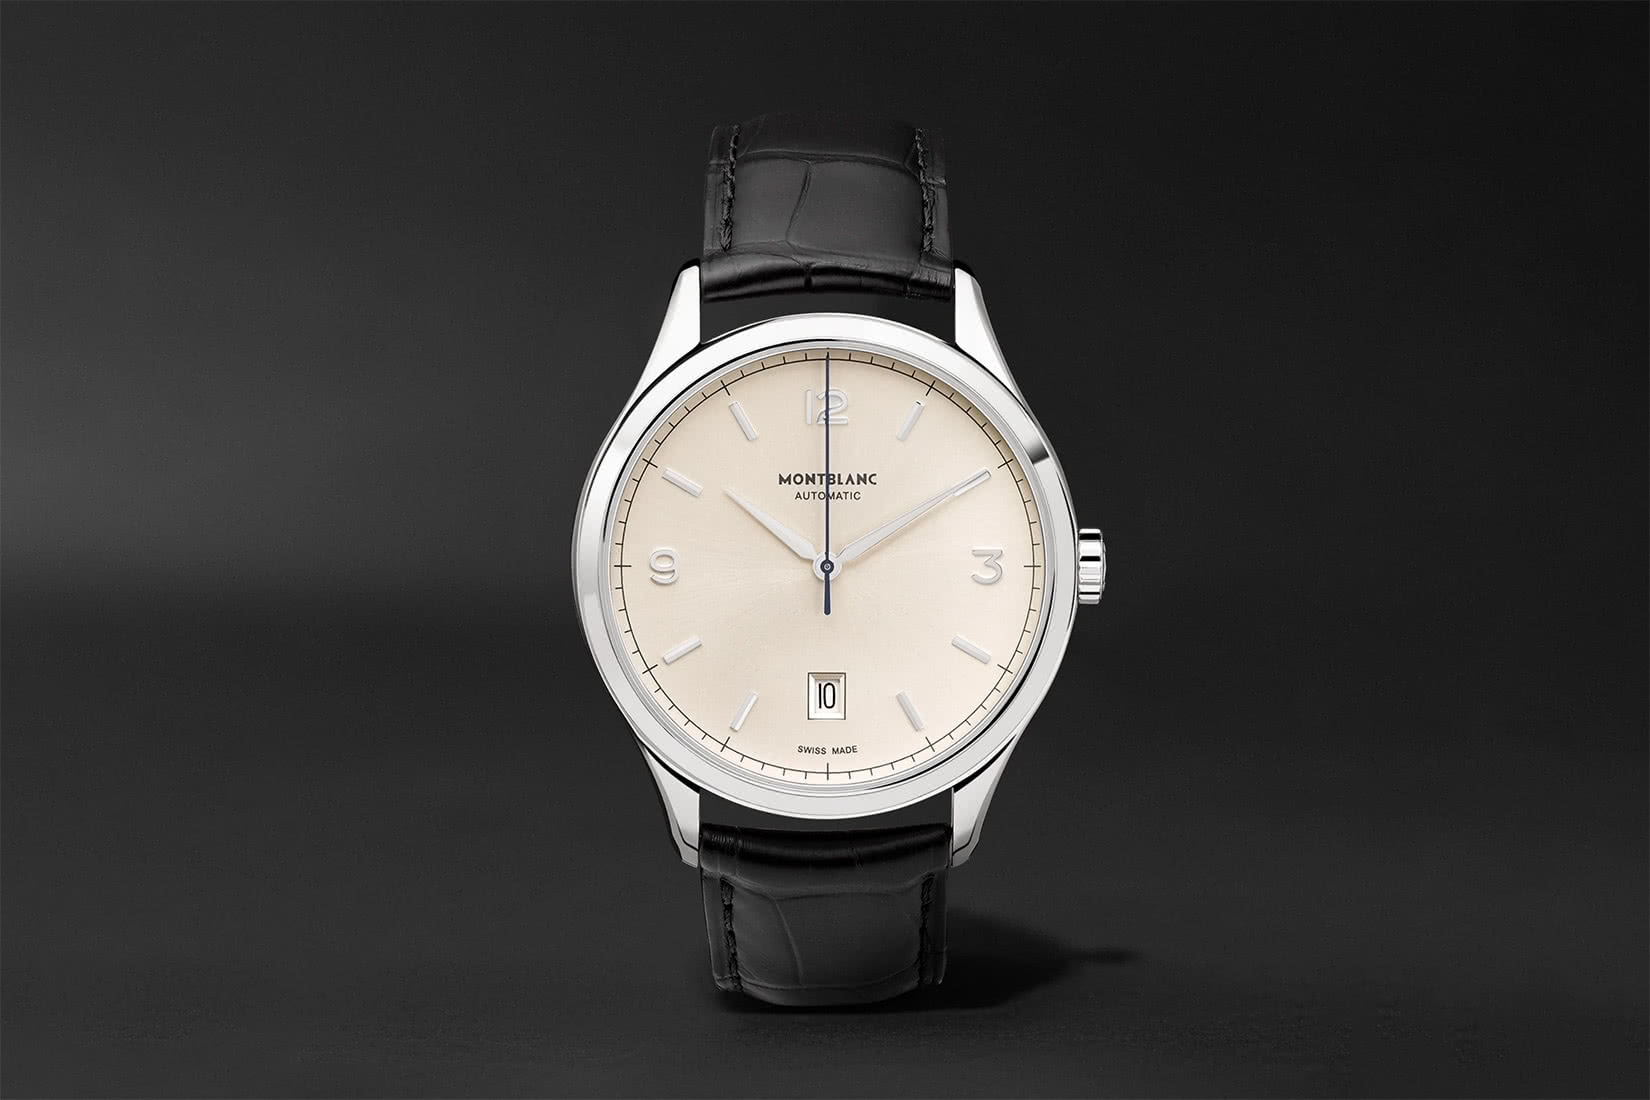 best men watches montblanc heritage chronometrie review - Luxe Digital